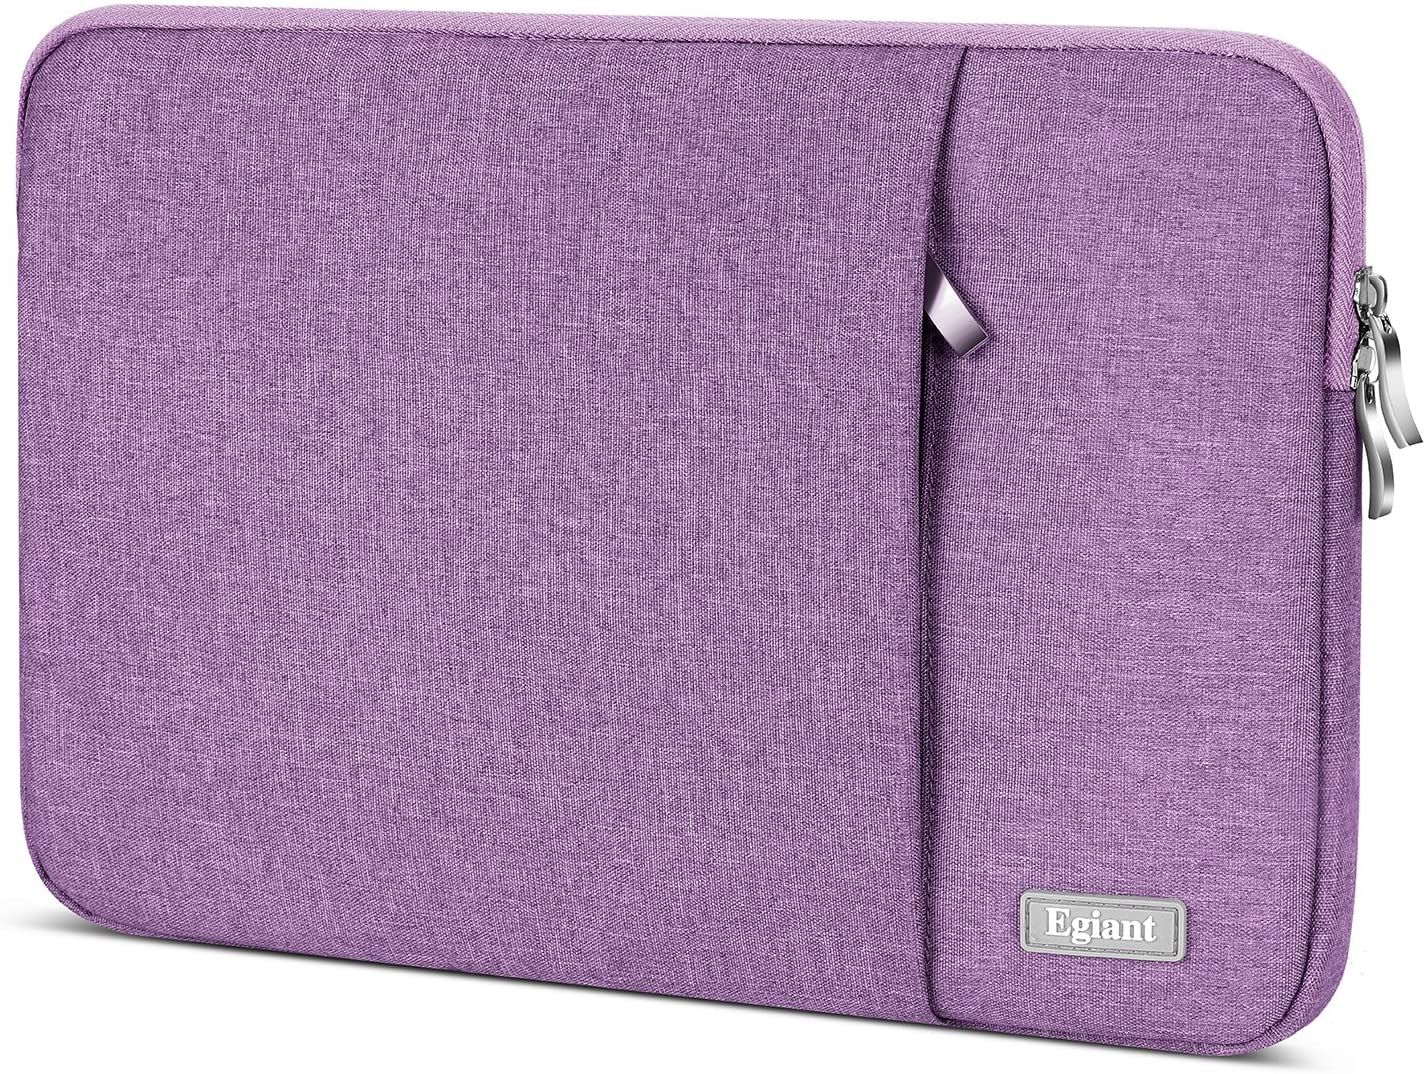 Laptop Sleeve Case 13.3 Inch,Egiant Water-Resistant Protective Fabric Bag Compatible Mac Pro 13 Retina,Mac Air 13,Surface Book,Stream 13,Chromebook 13,13-13.5 Inch Chromebook Computer Notebook,Purple